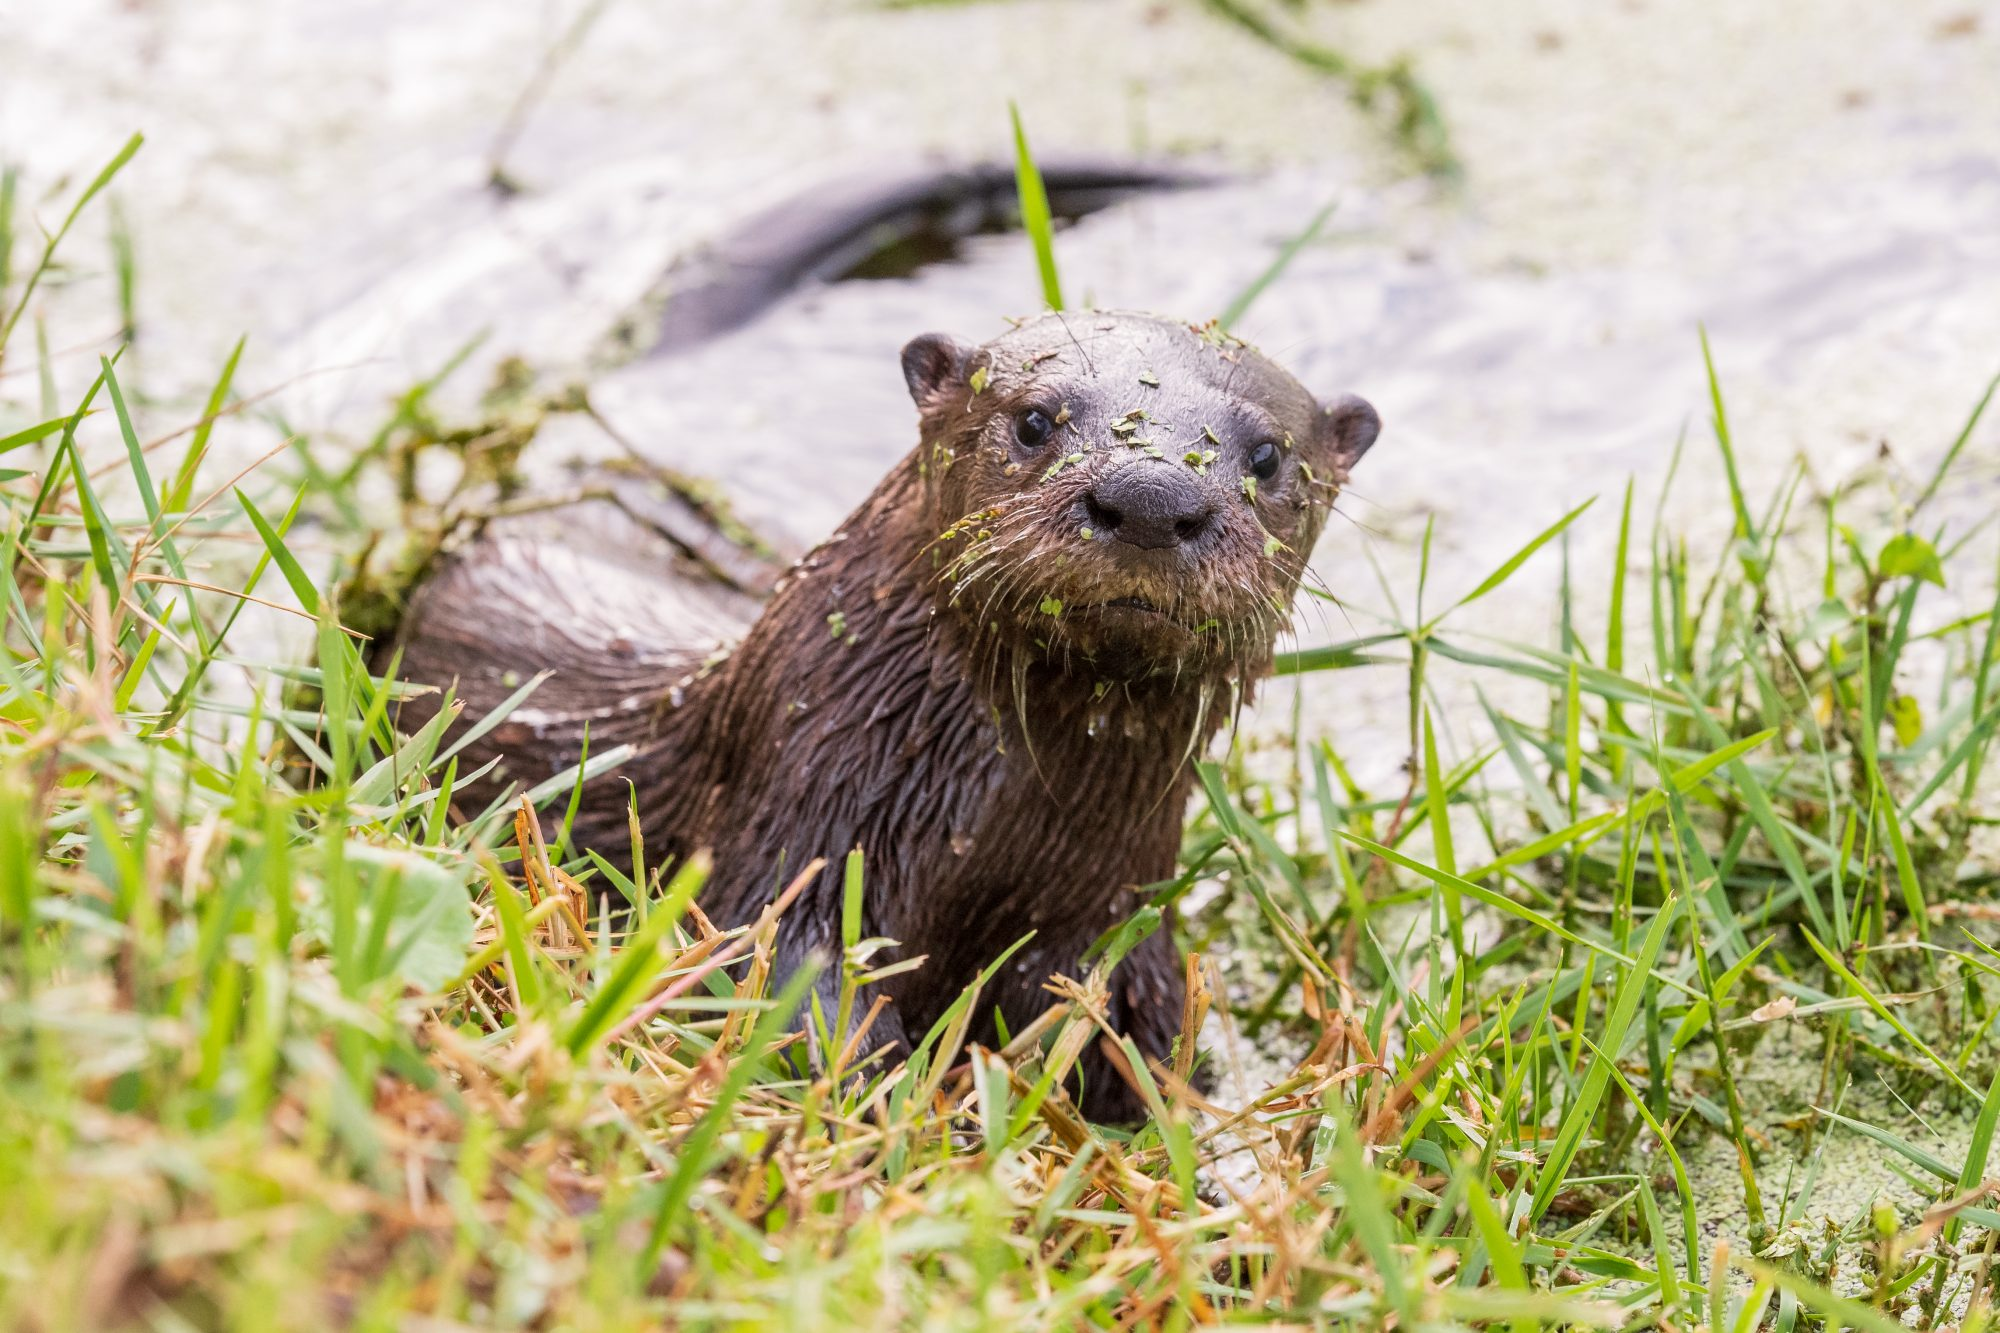 Young North American river otter